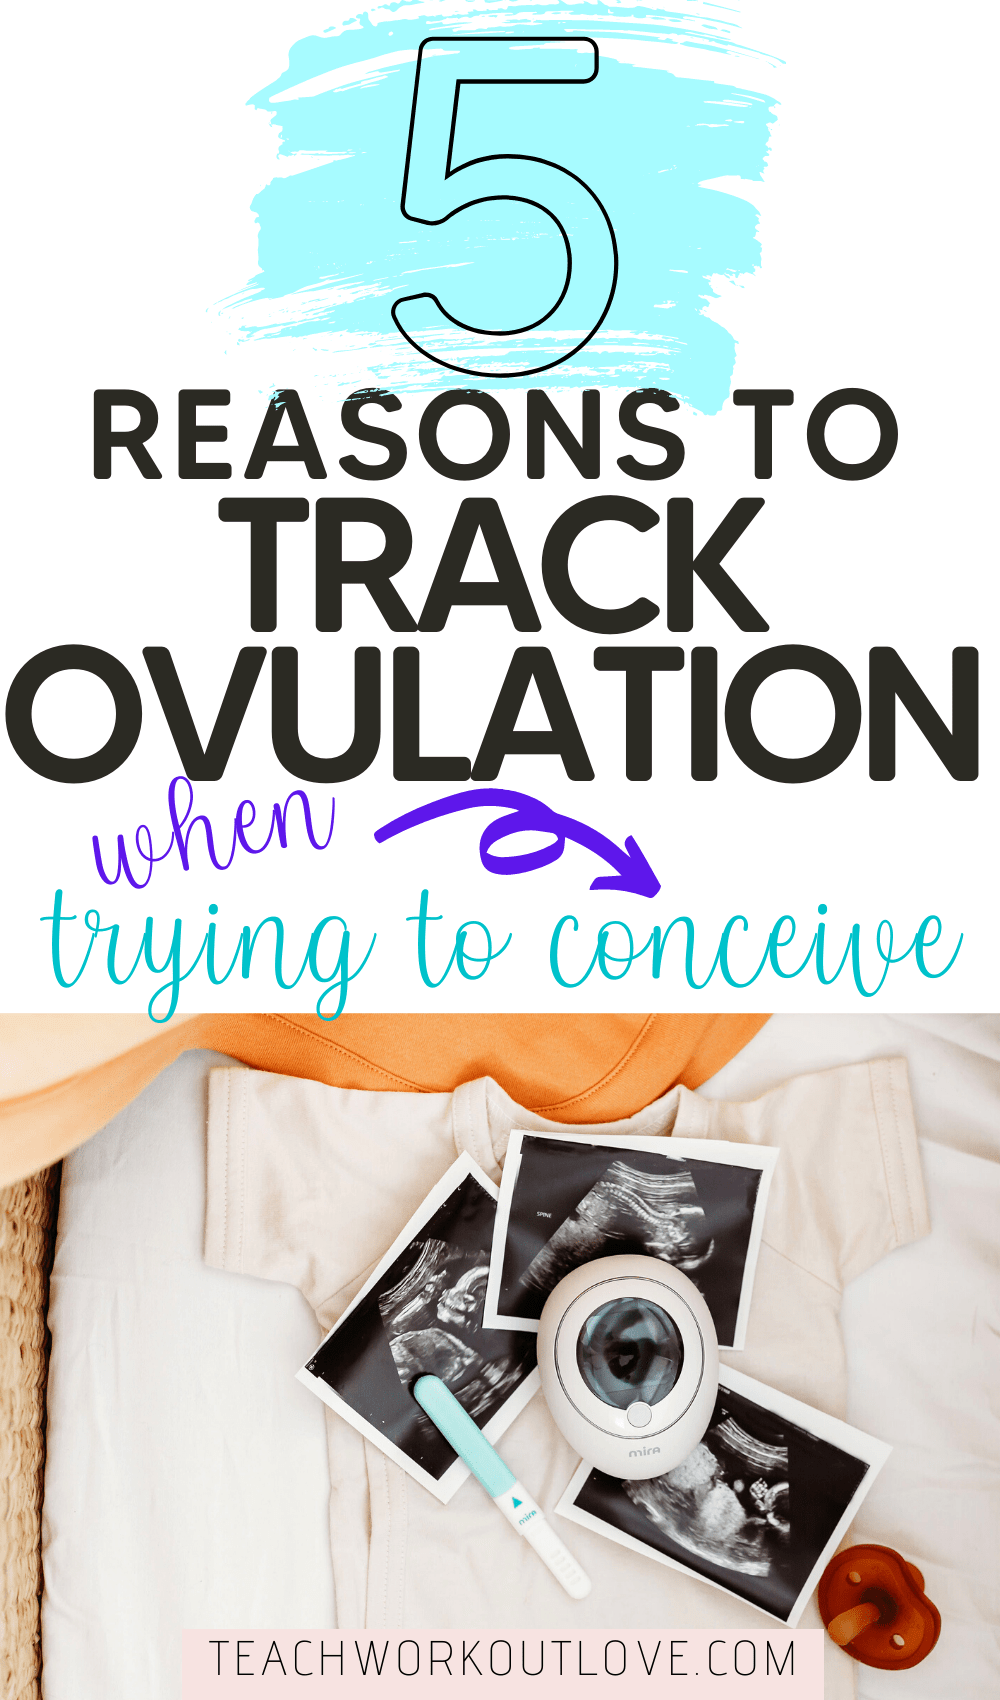 Getting pregnant is different for everyone. In this article we will share with you 5 reasons why you should track your ovulation when trying to conceive.